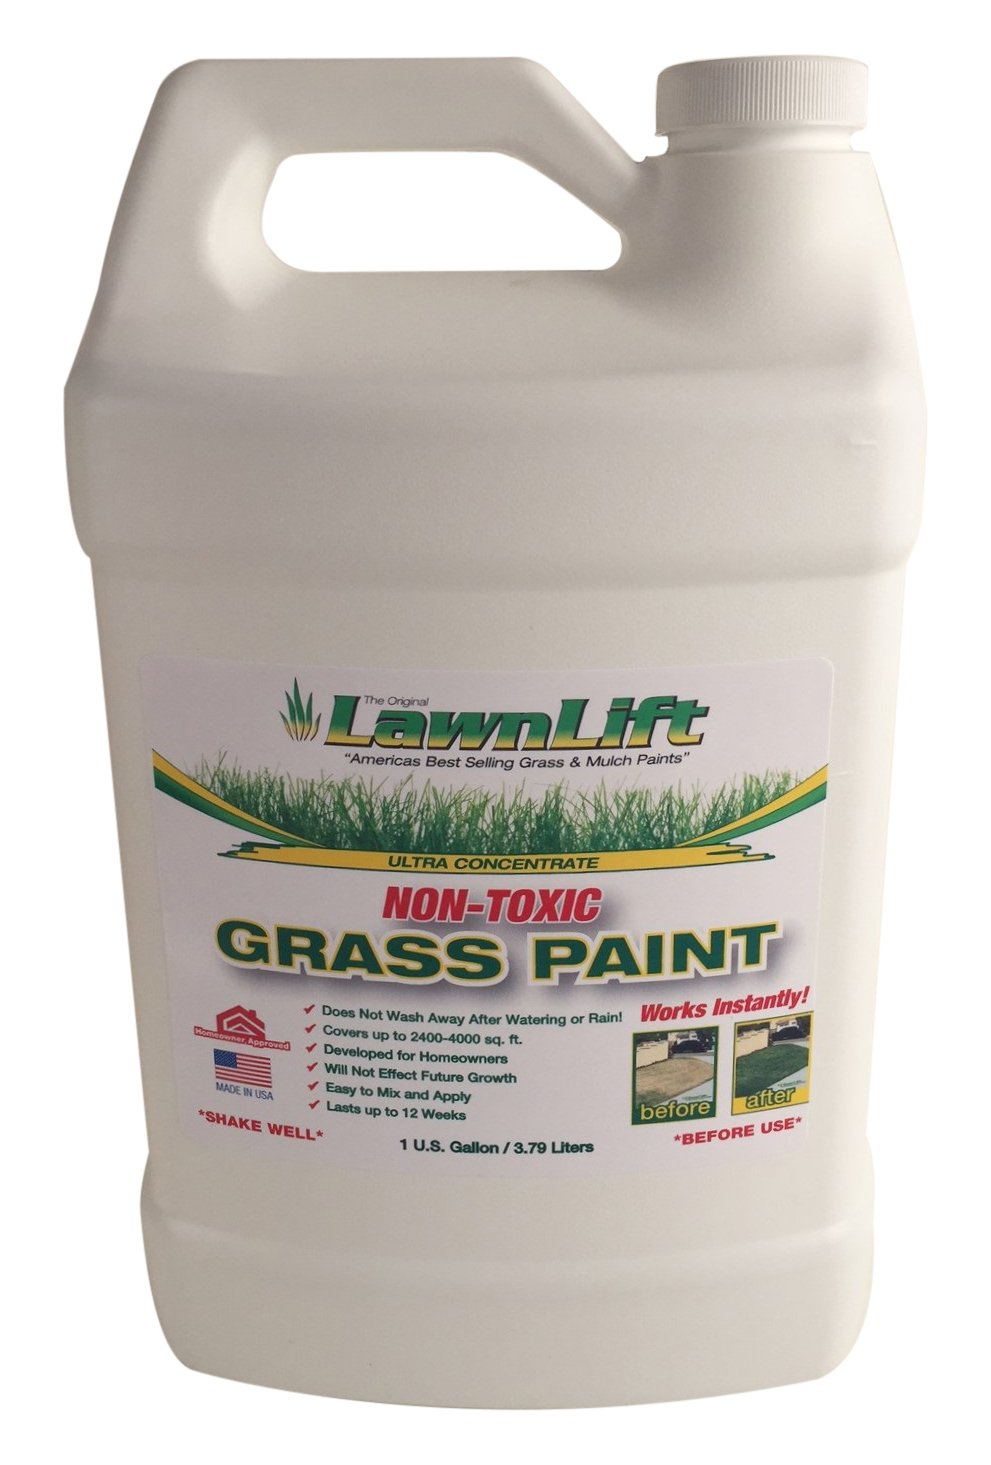 Lawn Paint Concentrated Lawn Paint (6 Units), 1 gallon